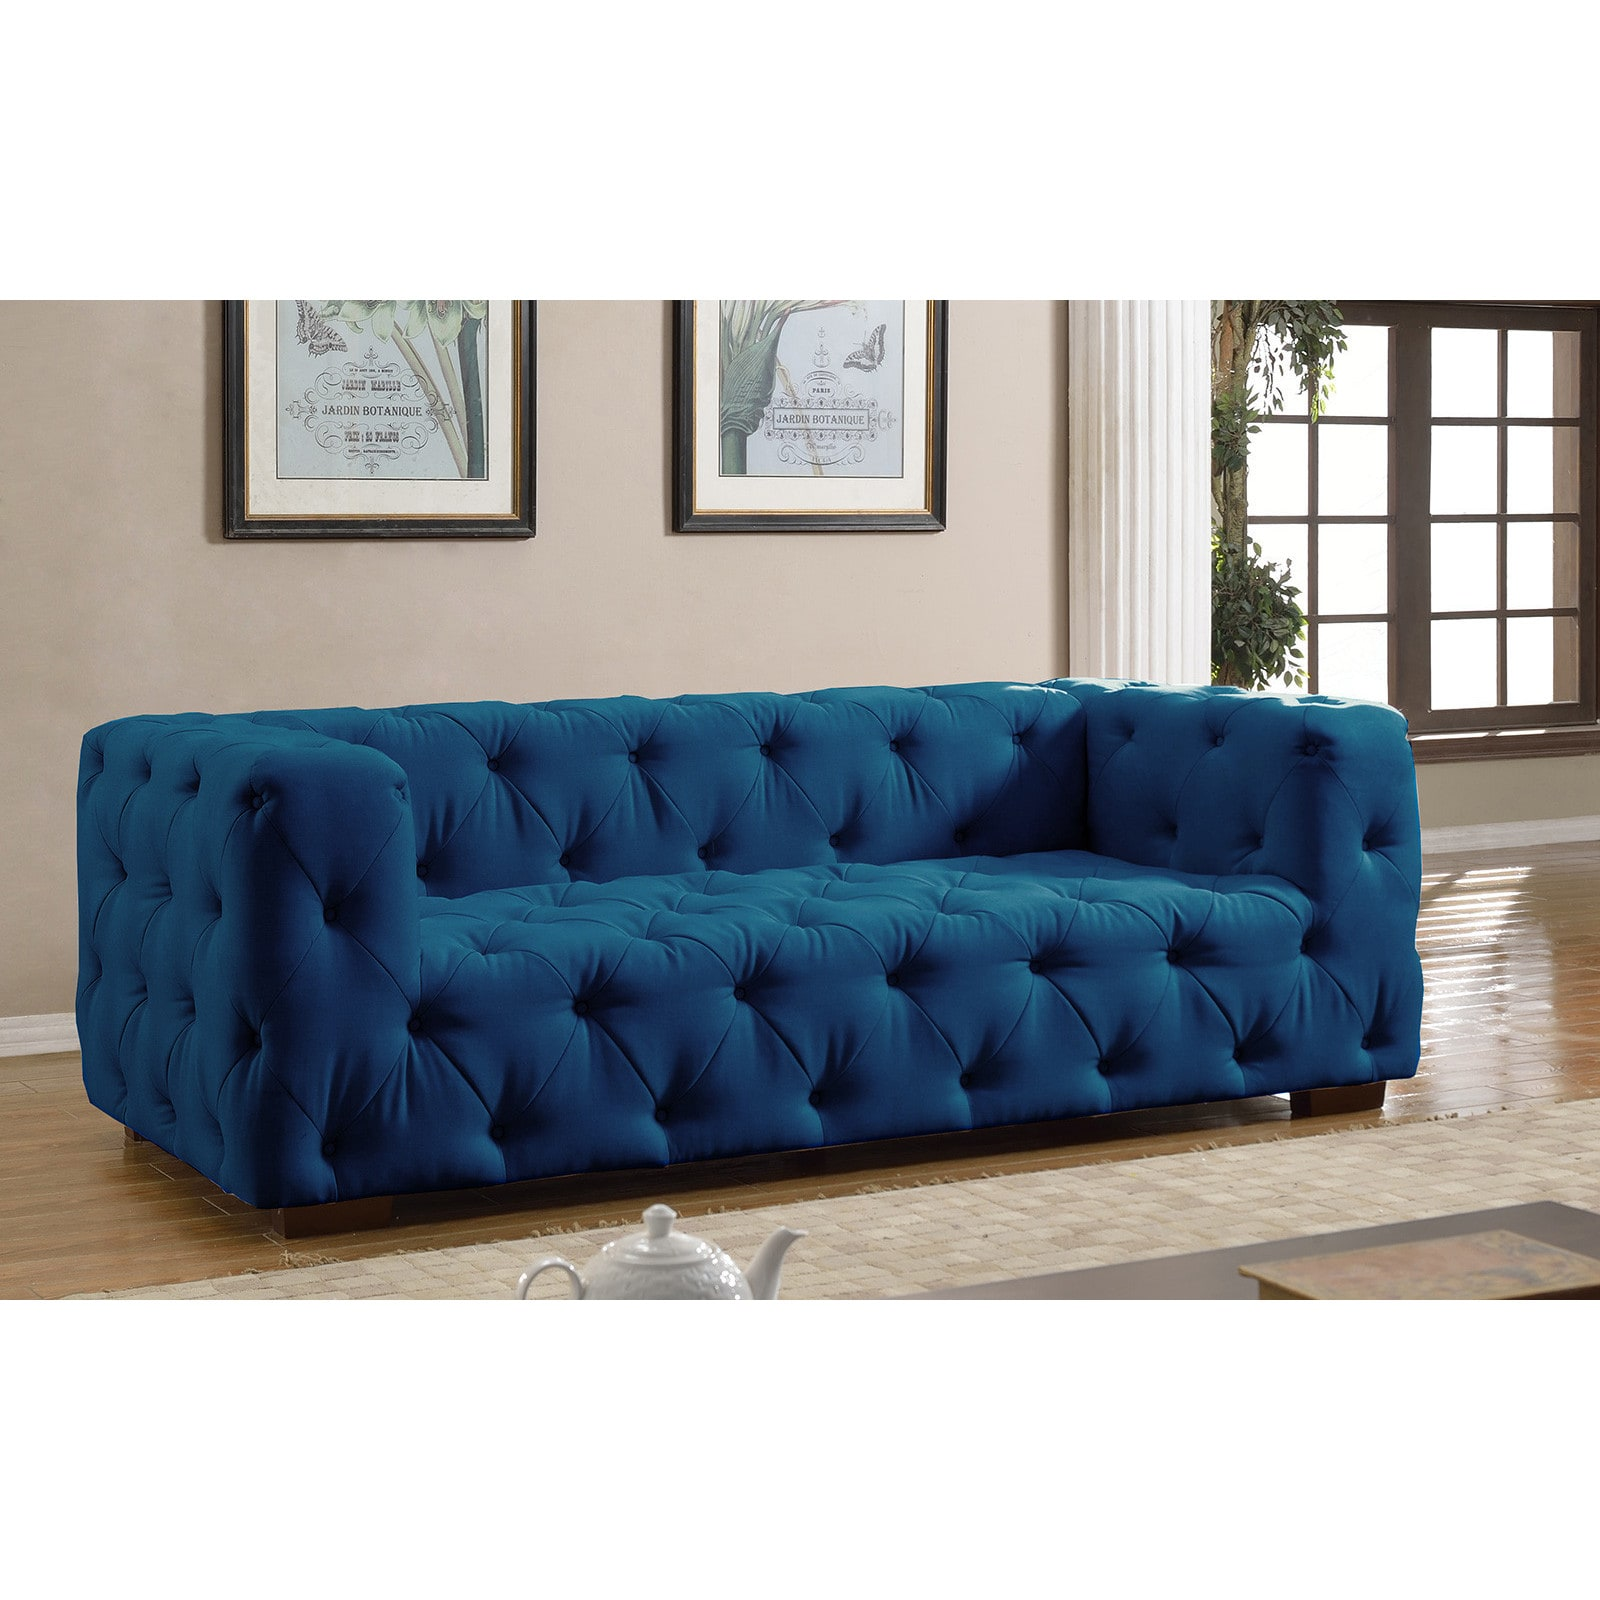 Candy Big Sofa Luxurious Modern Large Tufted Linen Fabric Sofa Walmart